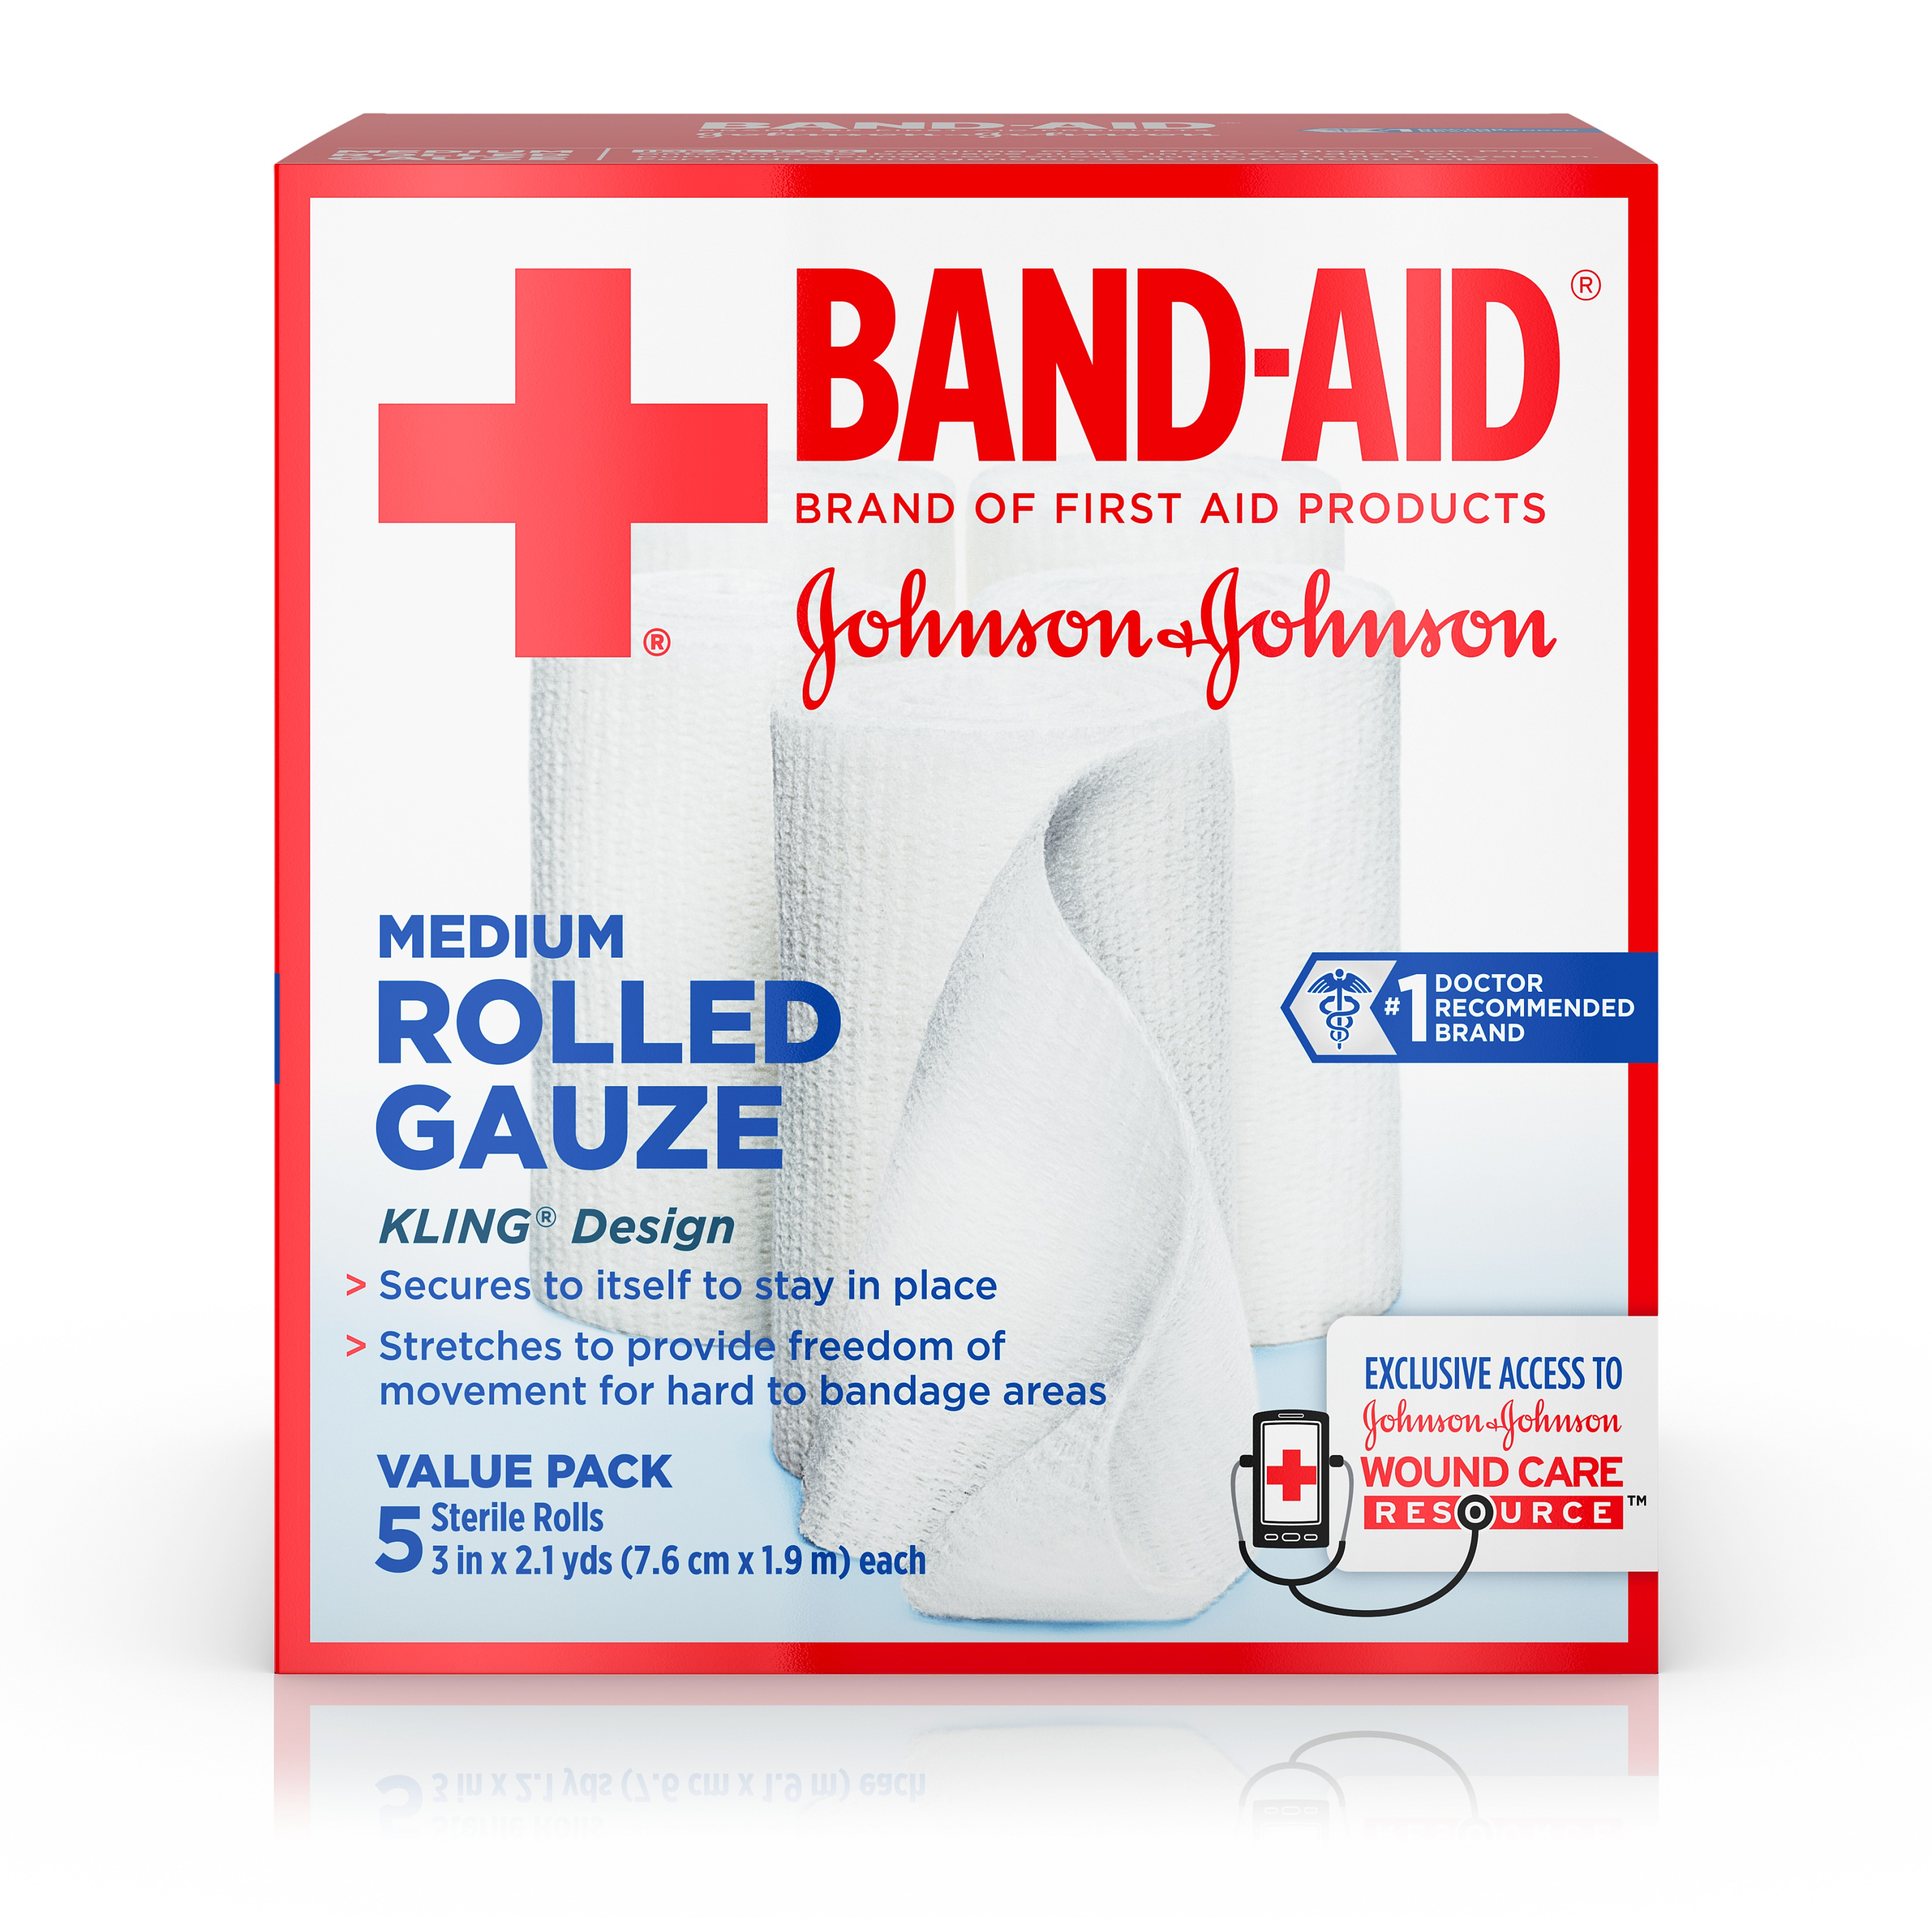 Click here to buy BAND-AID Brand of First Aid Products Rolled Gauze, Minor Wound Care, 3 Inches by 2.1 Yards, 5 Count Value Pack by Johnson & Johnson.